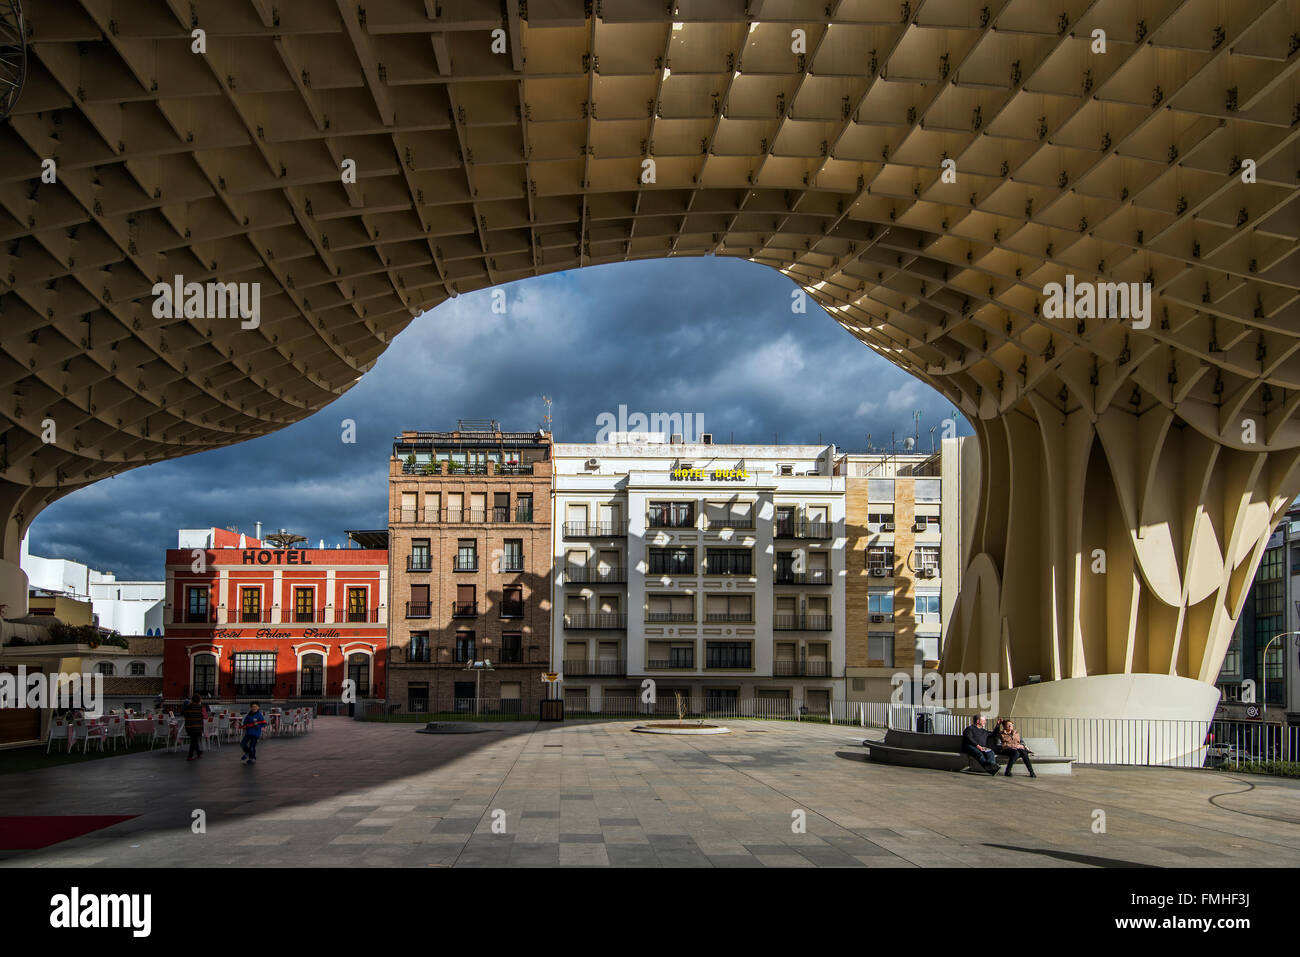 Metropol Parasol wooden structure, Seville, Andalusia, Spain - Stock Image